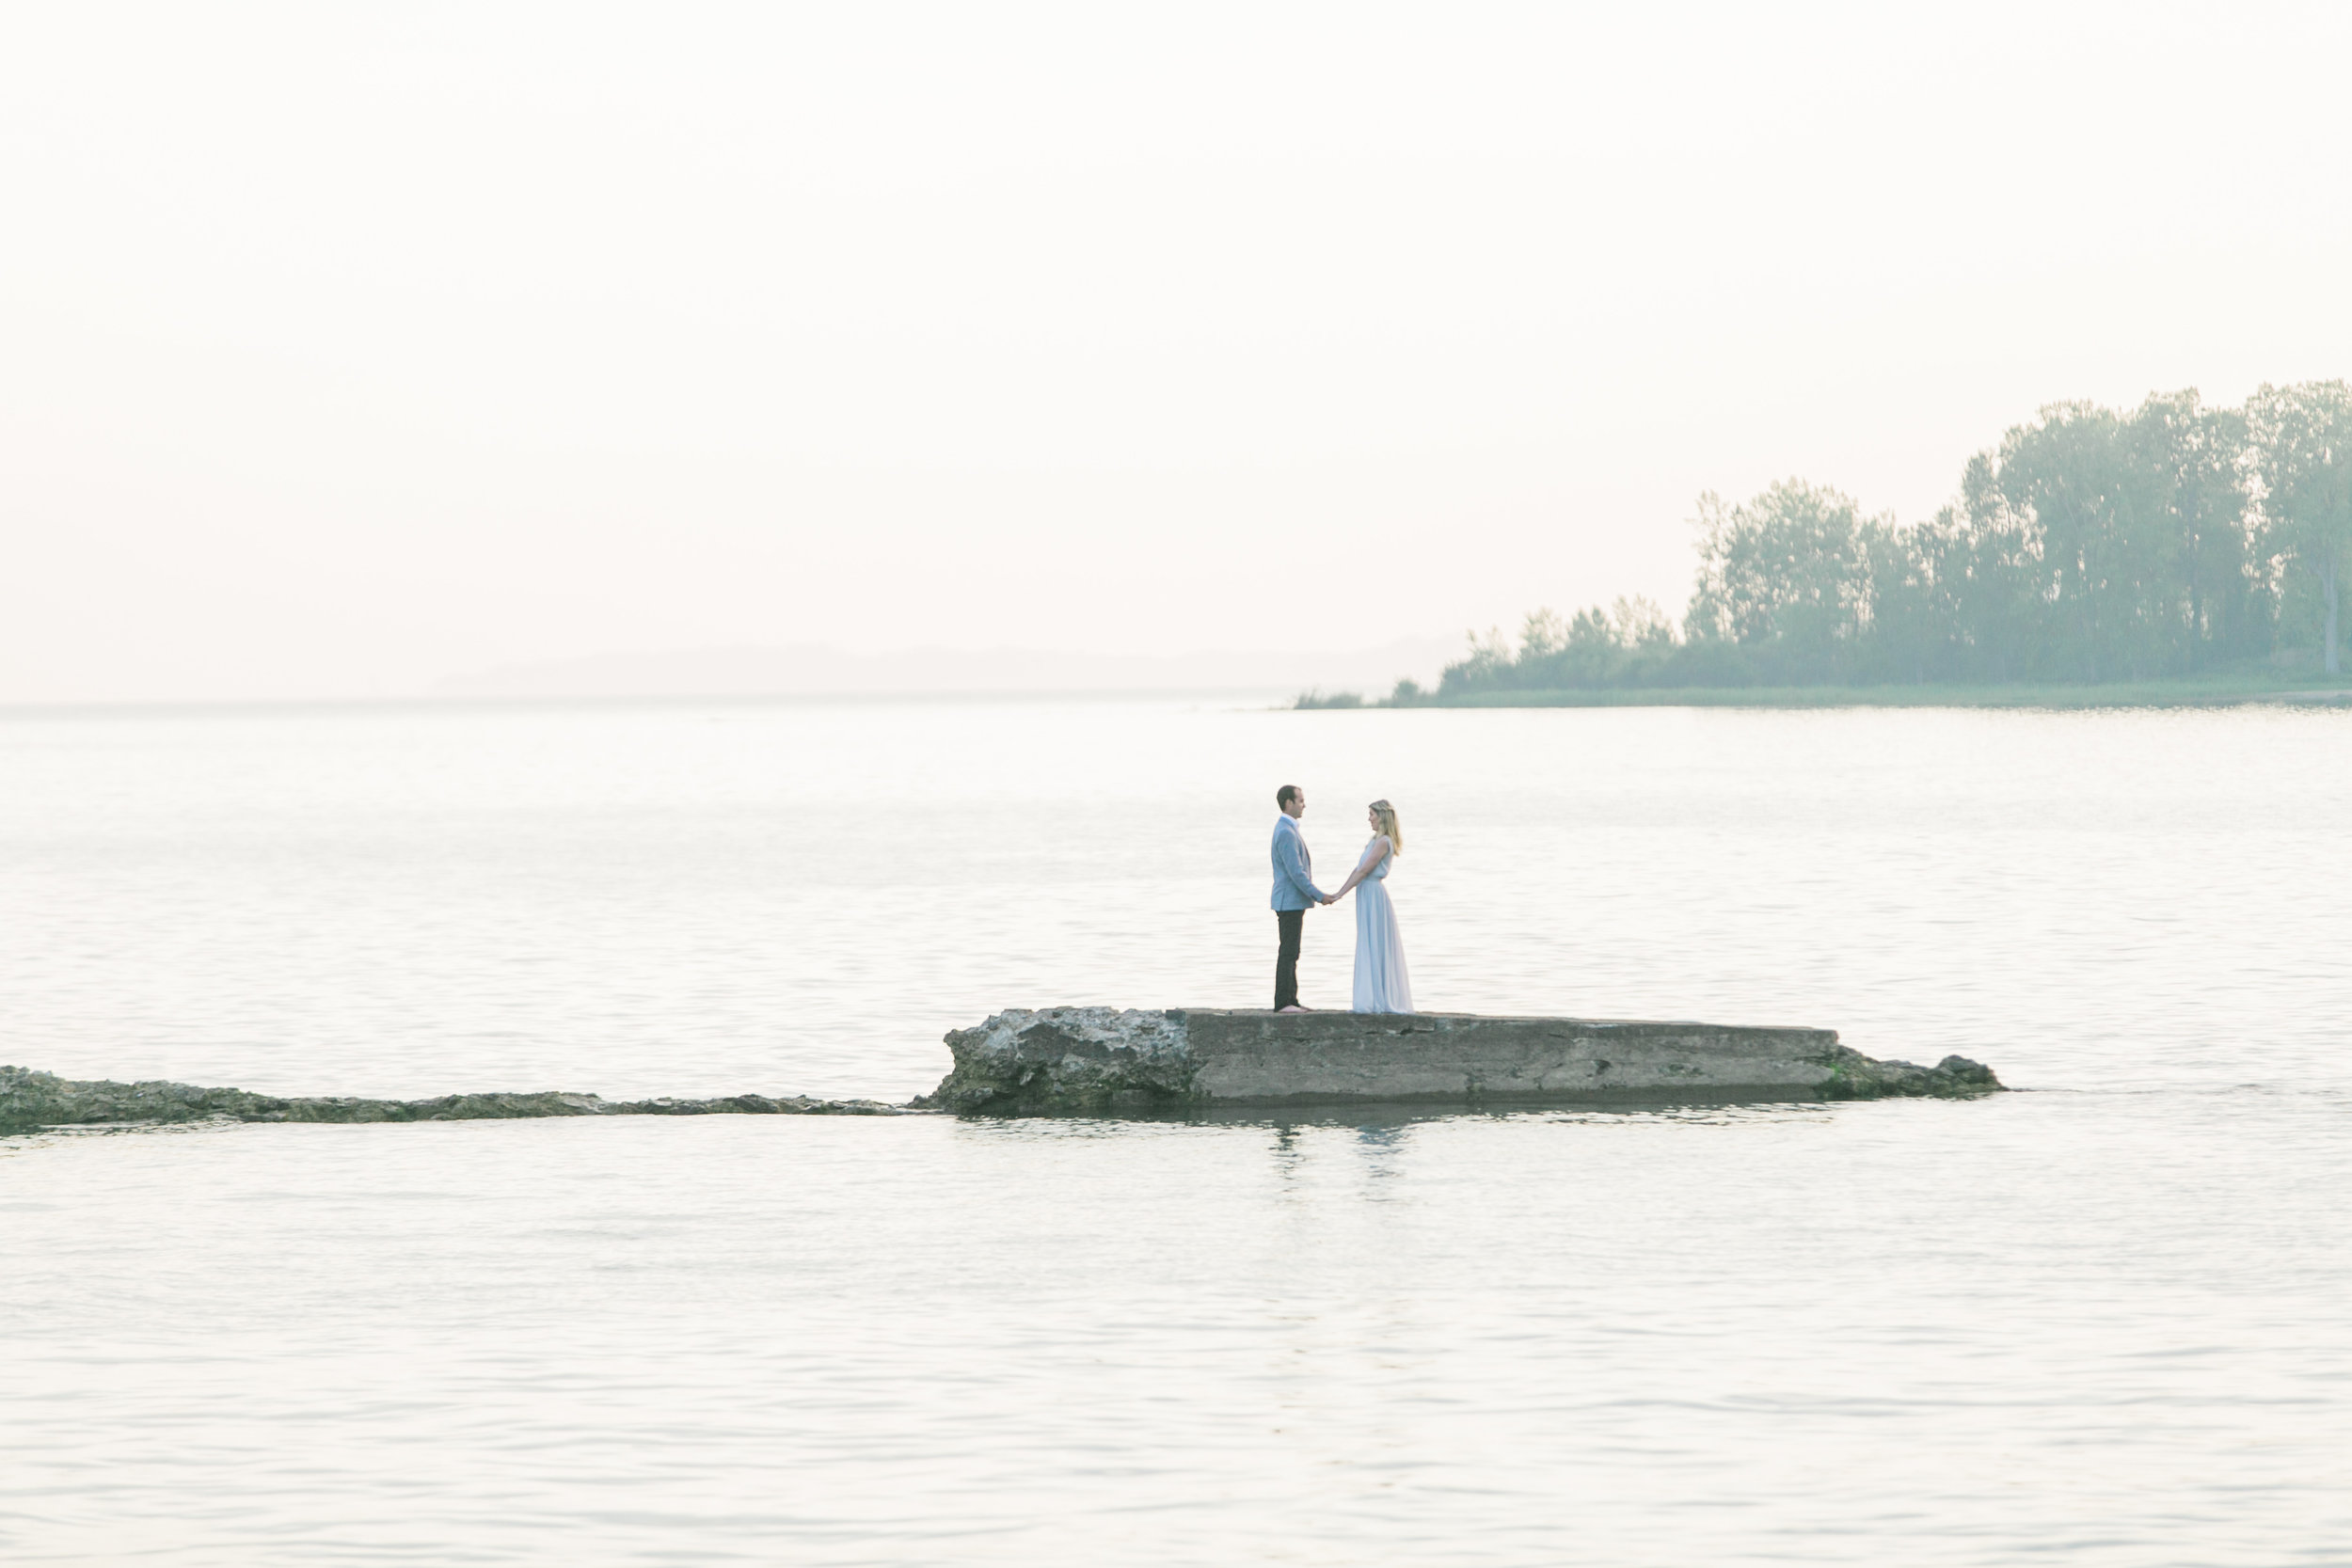 amanda cowley events niagara wedding planner beach engagement session sunset romantic in the water